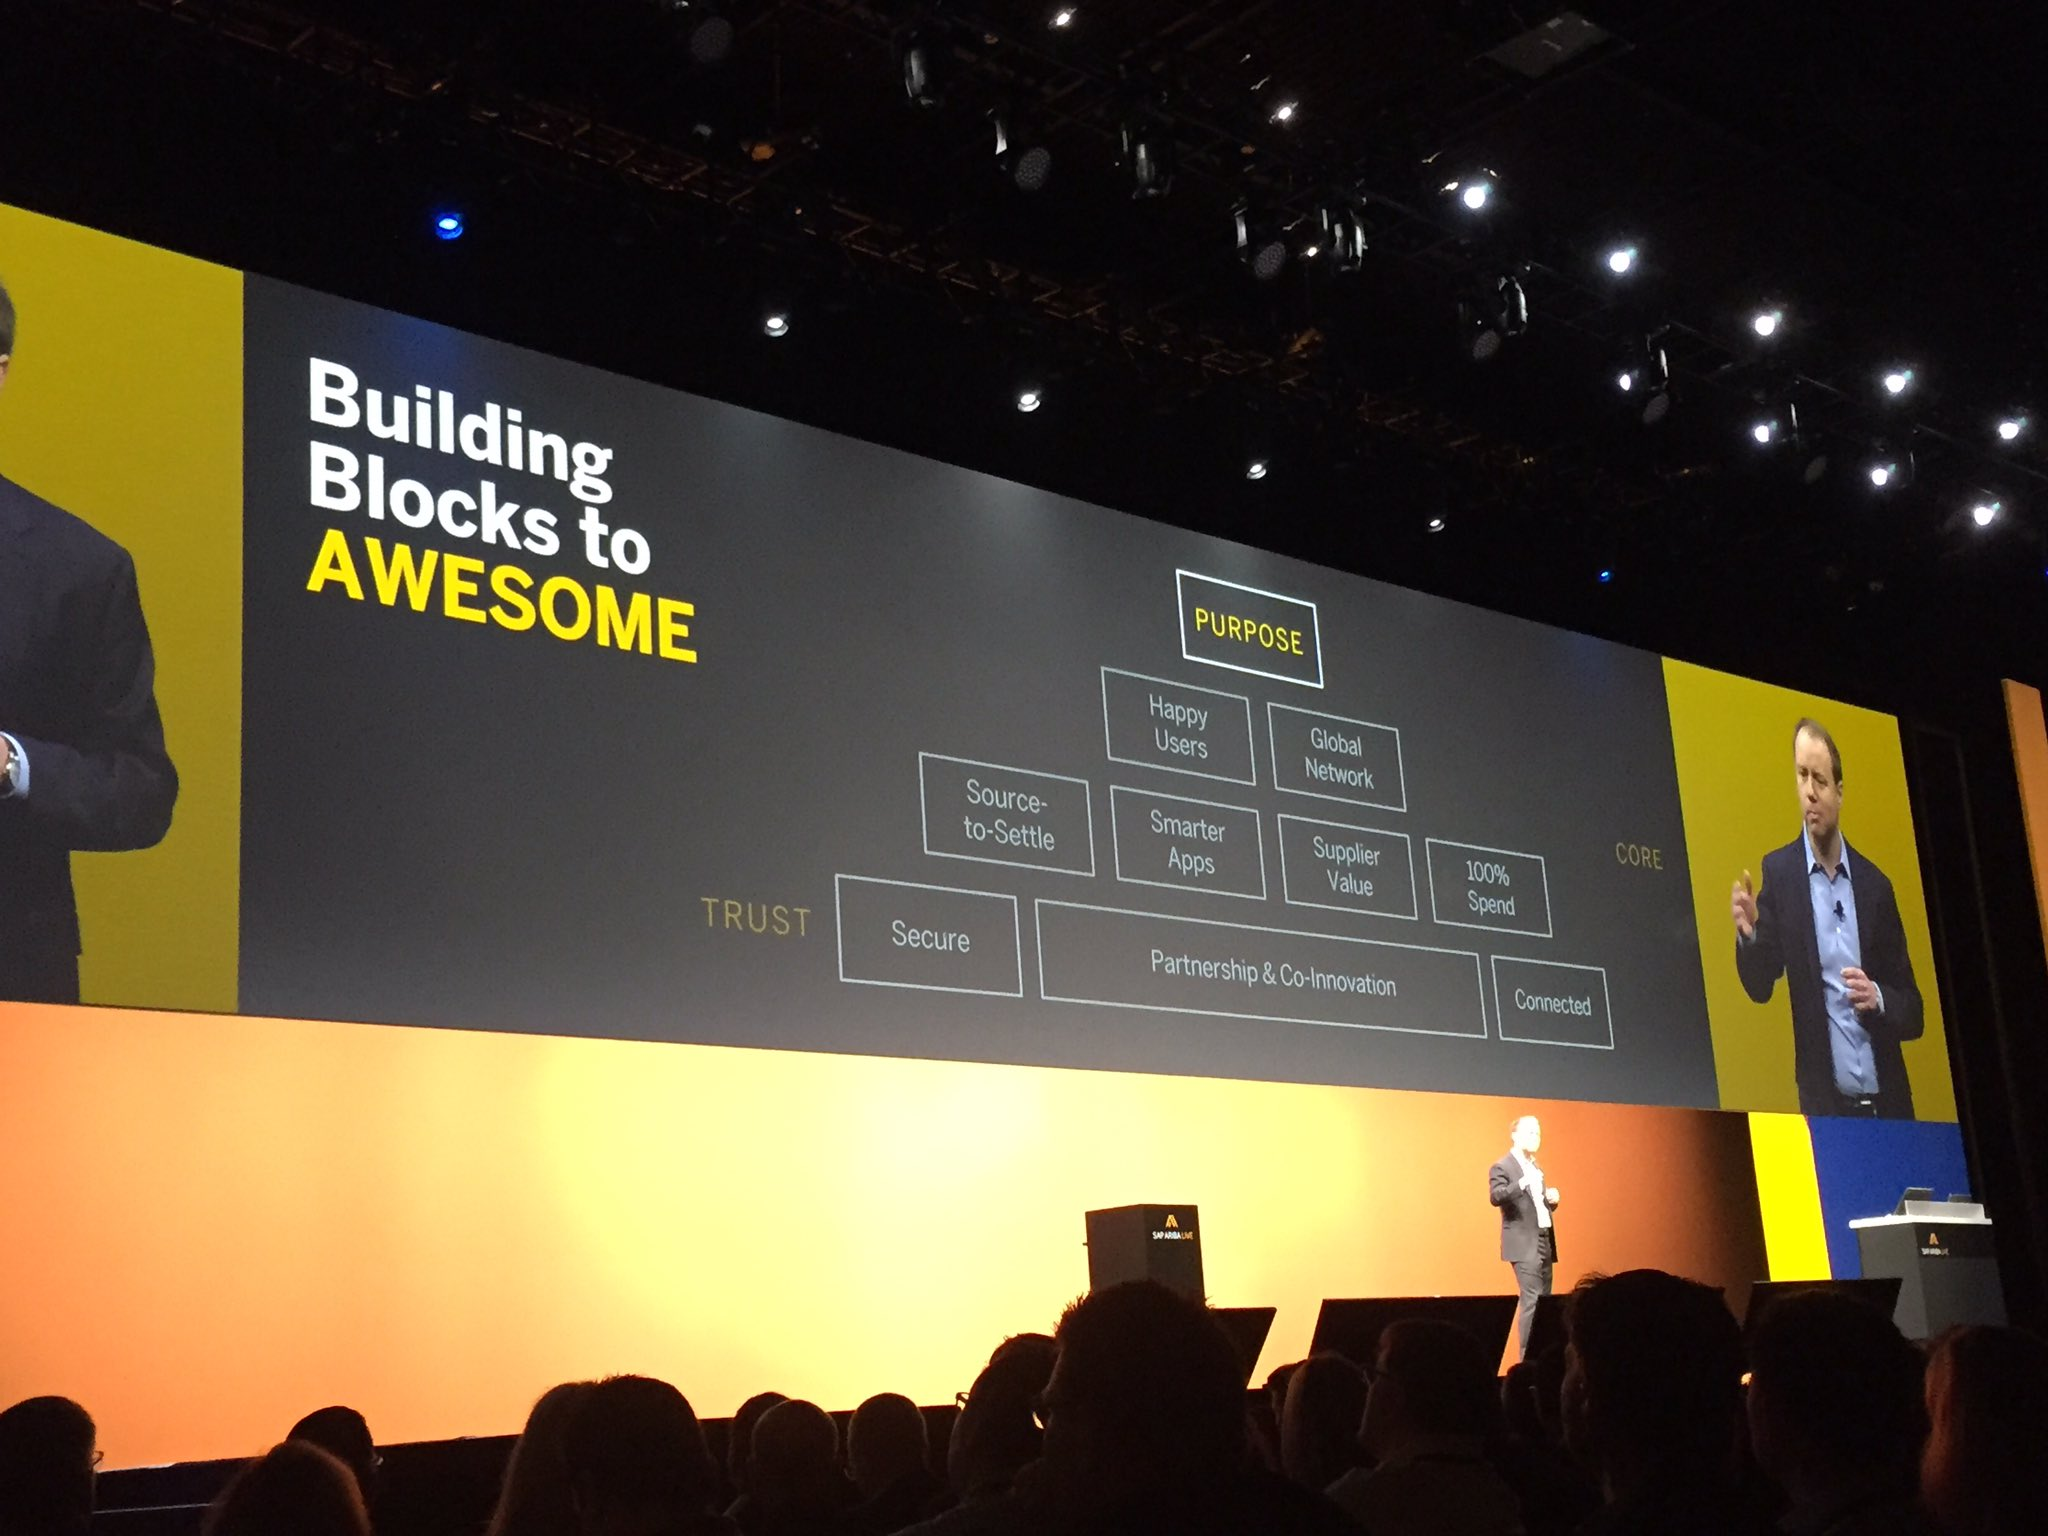 """@aatzberger talks about the building blocks to awesome. """"Trust is critical in today's work."""" #makeprocurementawesome  #SAPARIBALIVE https://t.co/MegKgTrBD2"""